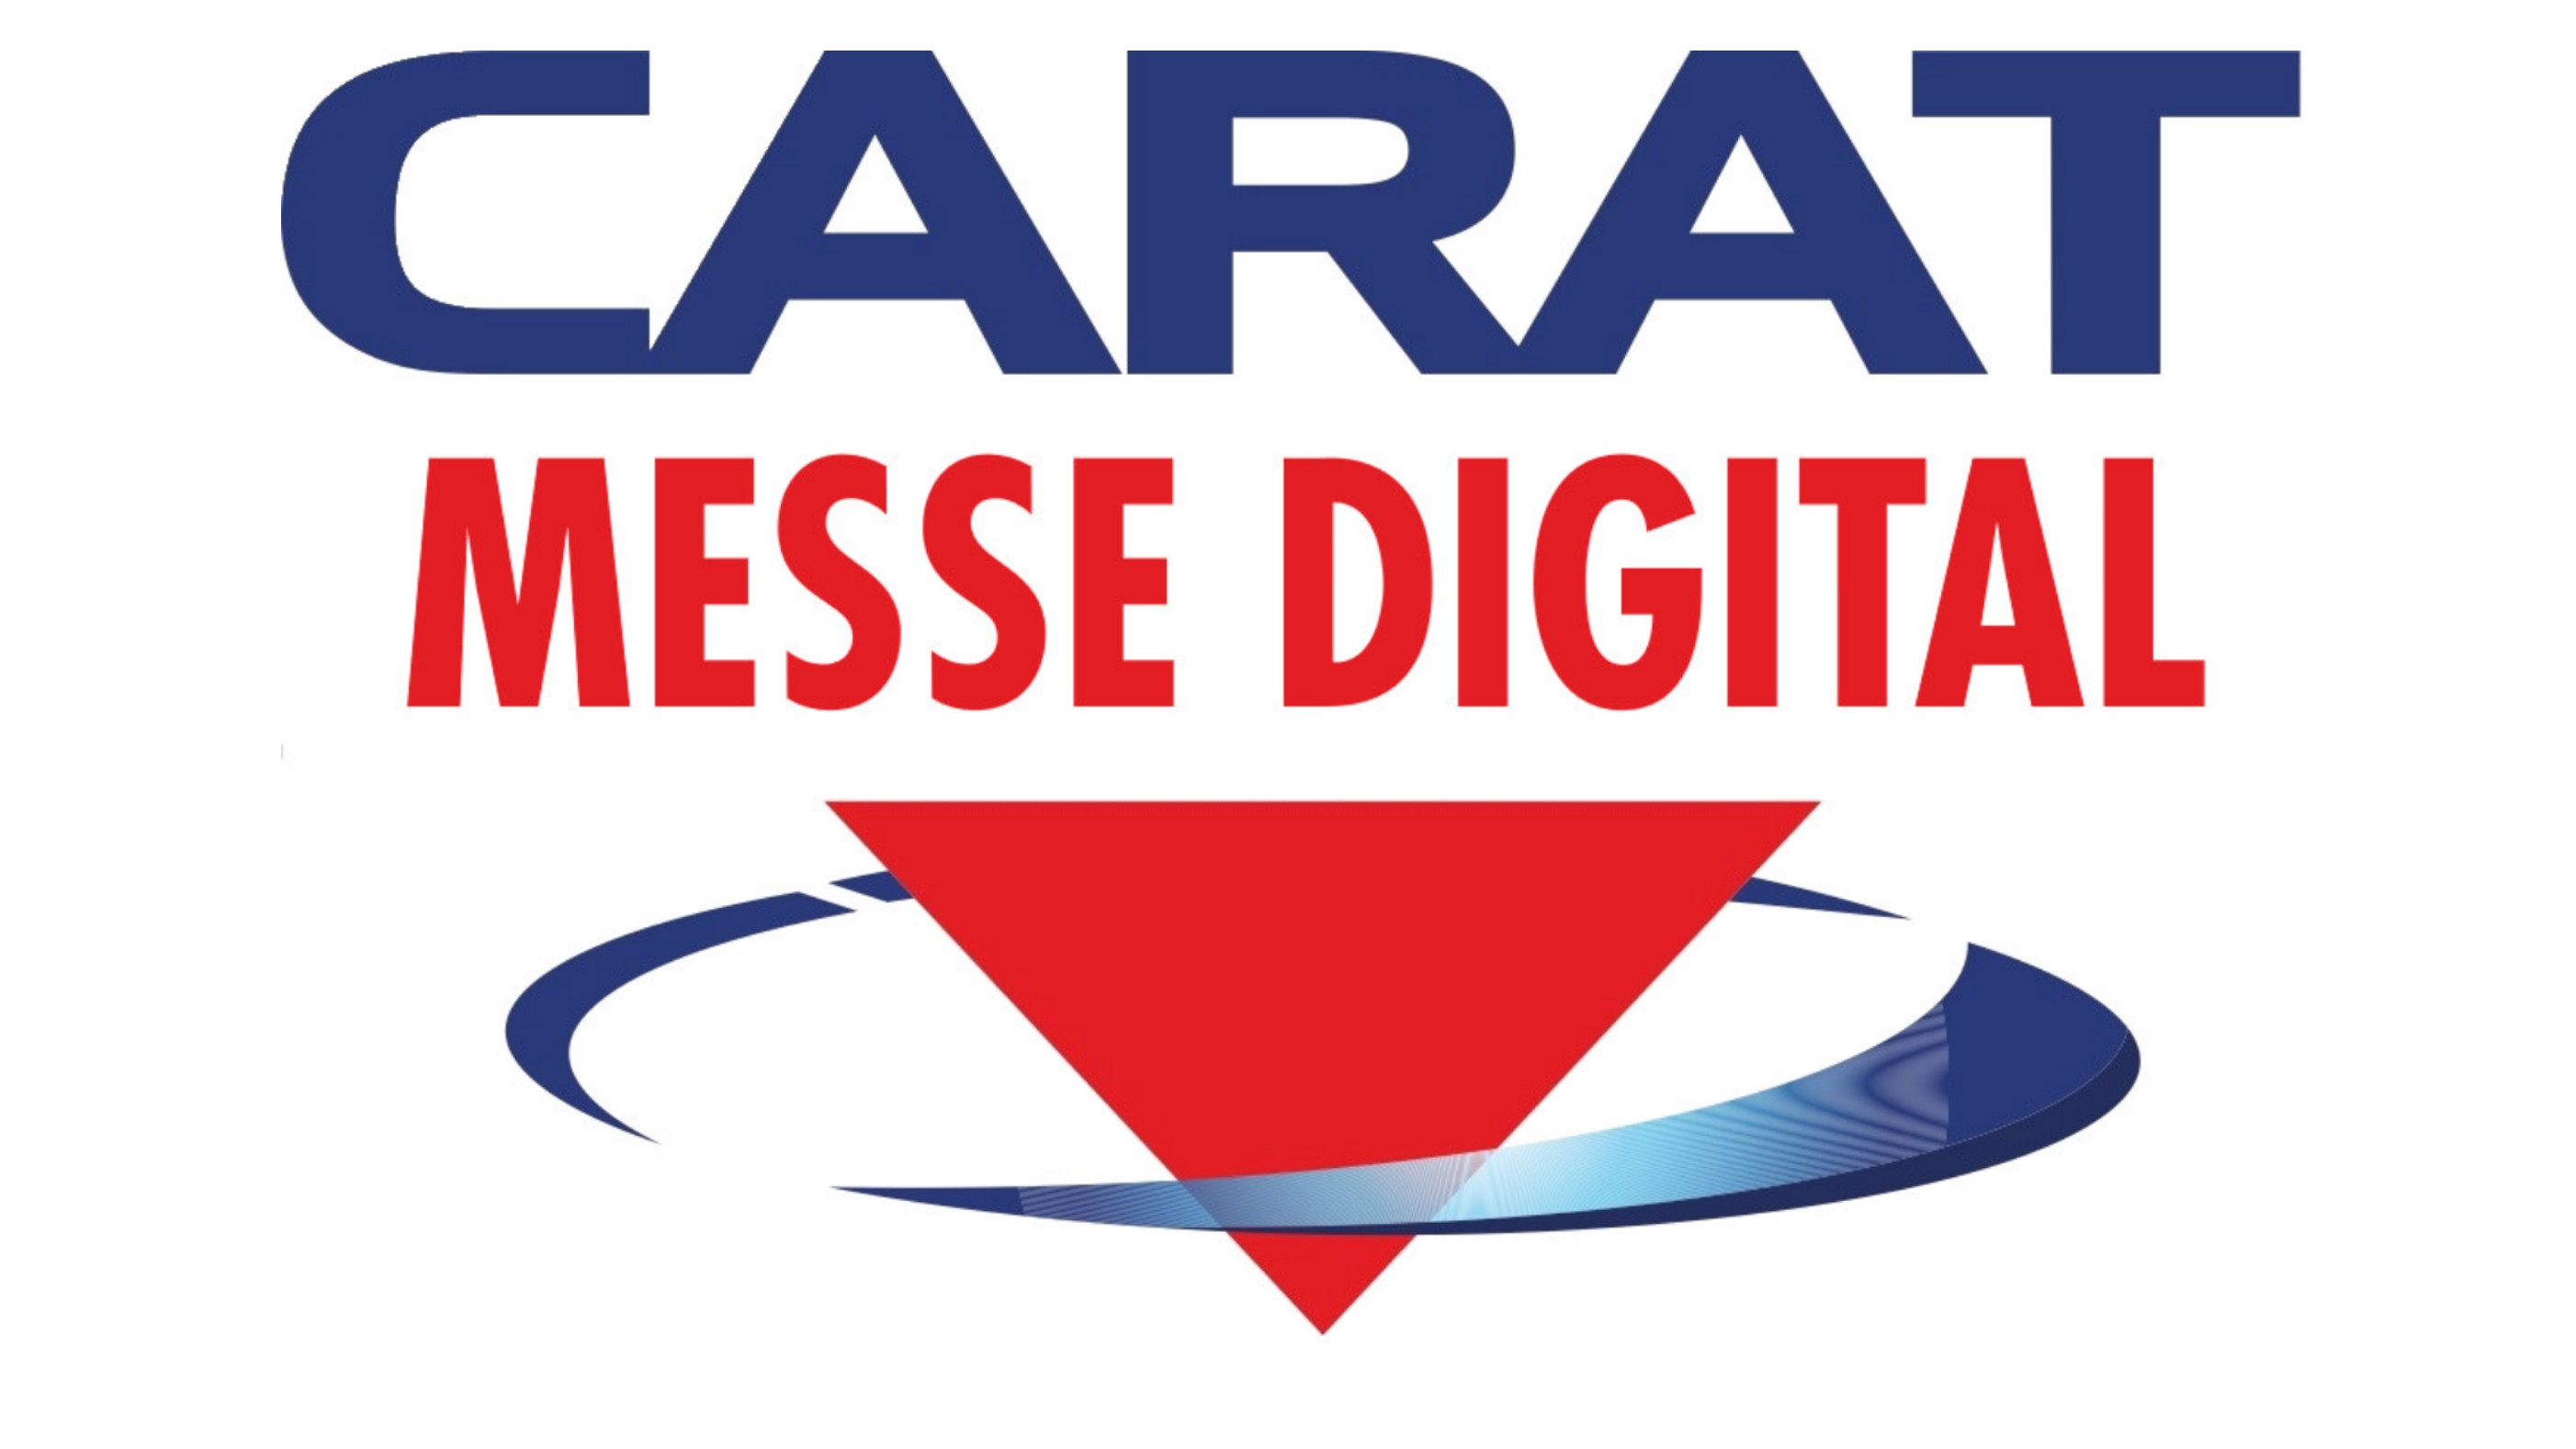 Carat-Messe-digital_16-9.jpeg